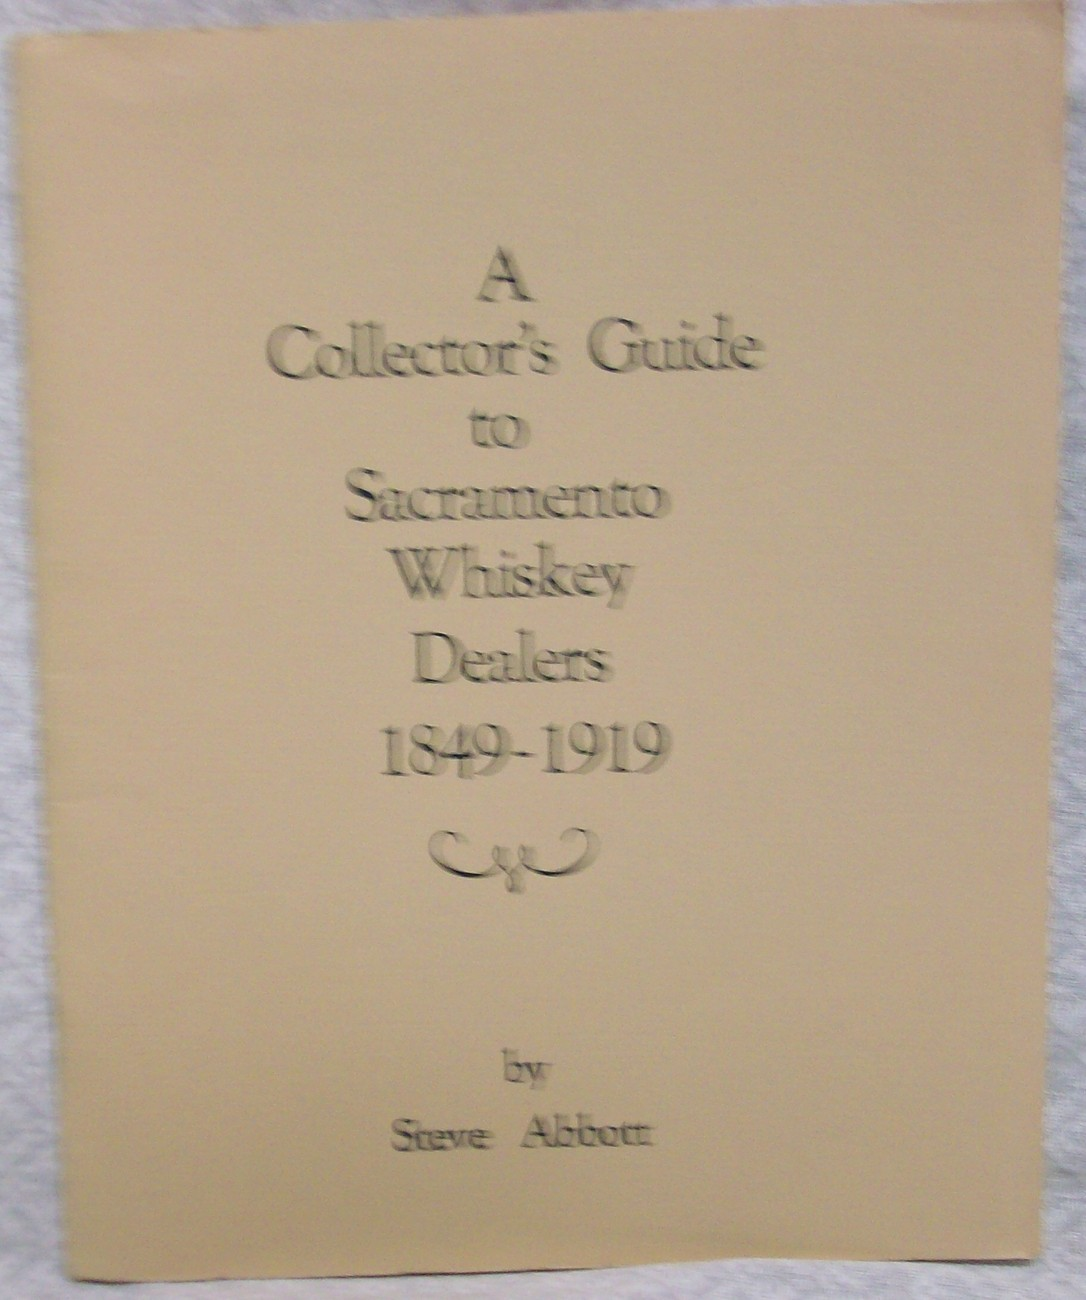 A Collector's Guide to Sacramento Whiskey Dealers 1849-1919